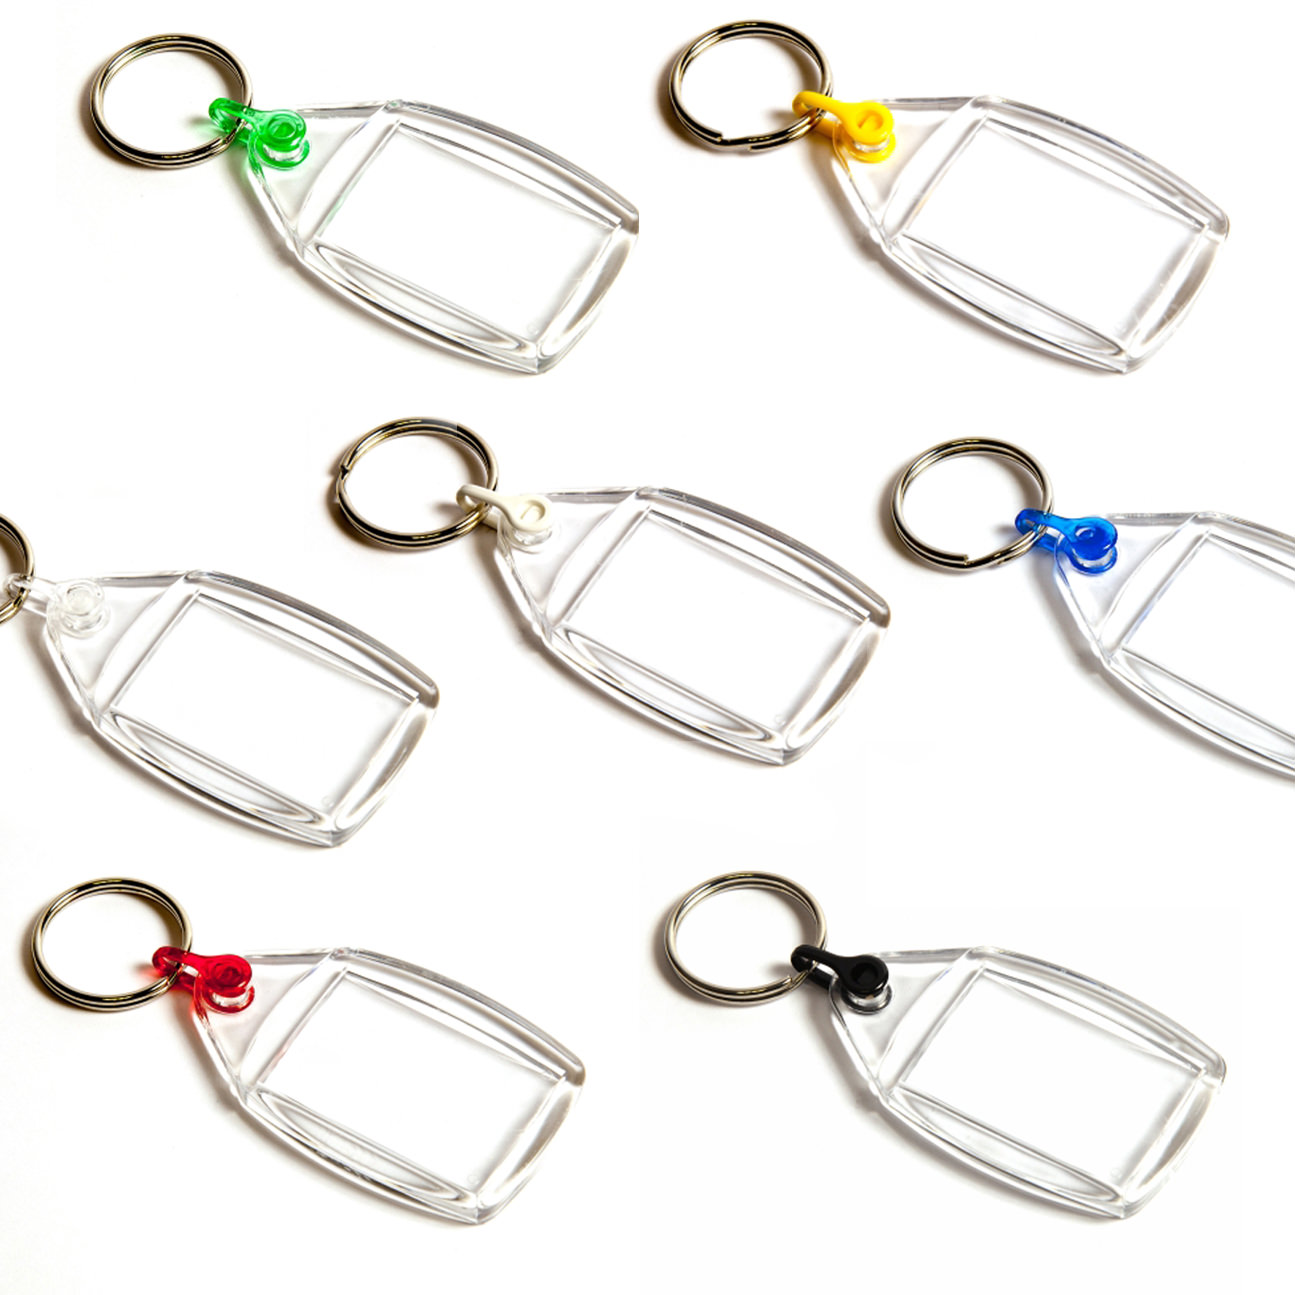 P502 Rectangular Blank Plastic Photo Insert Keyring with Mixed Coloured Connectors - 35 x 24mm